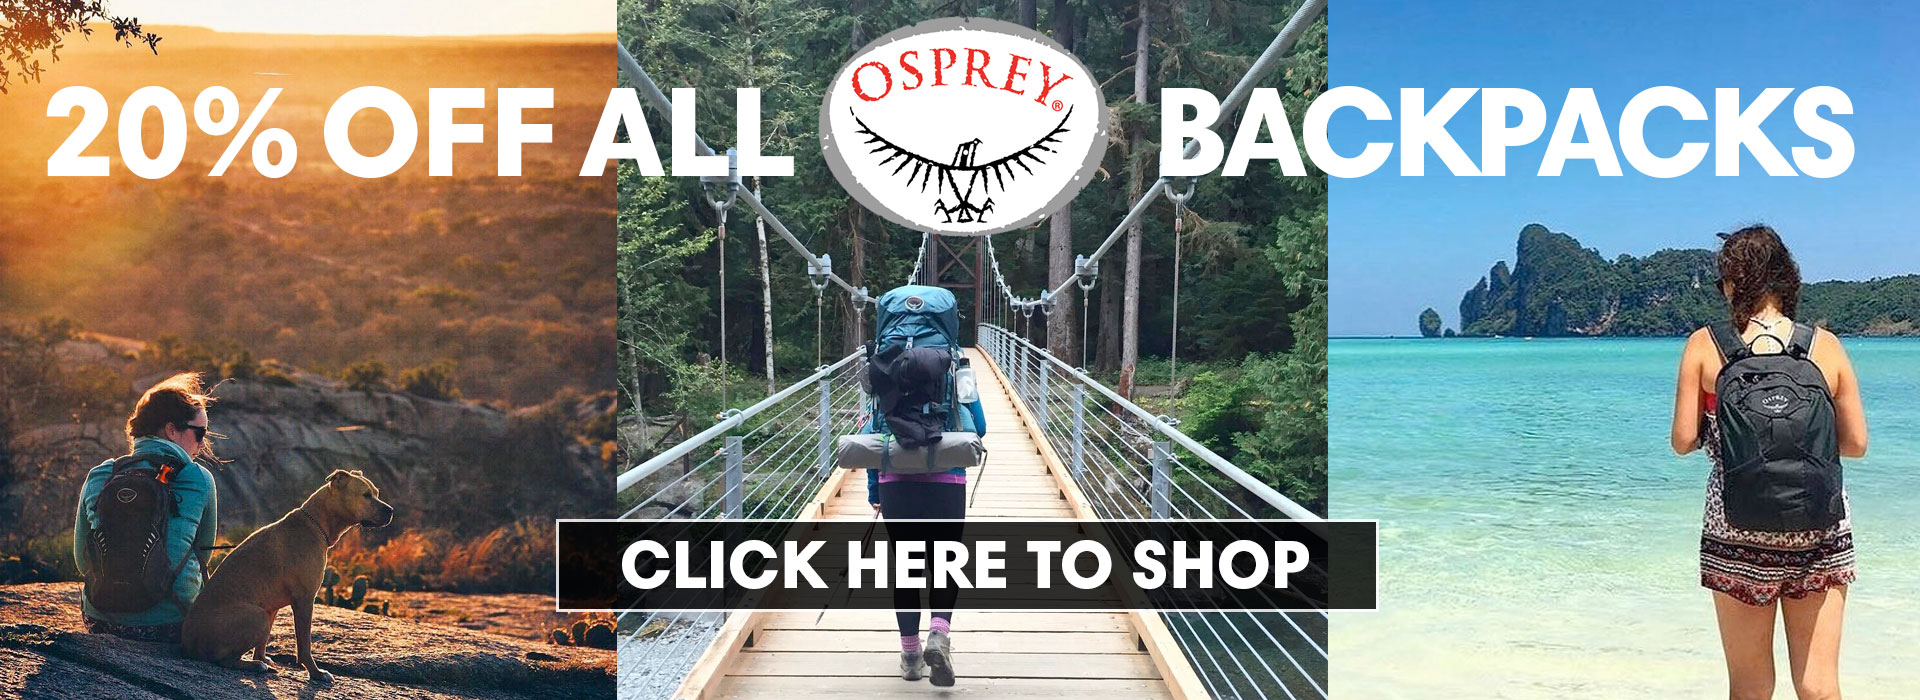 Osprey Backpack Sale